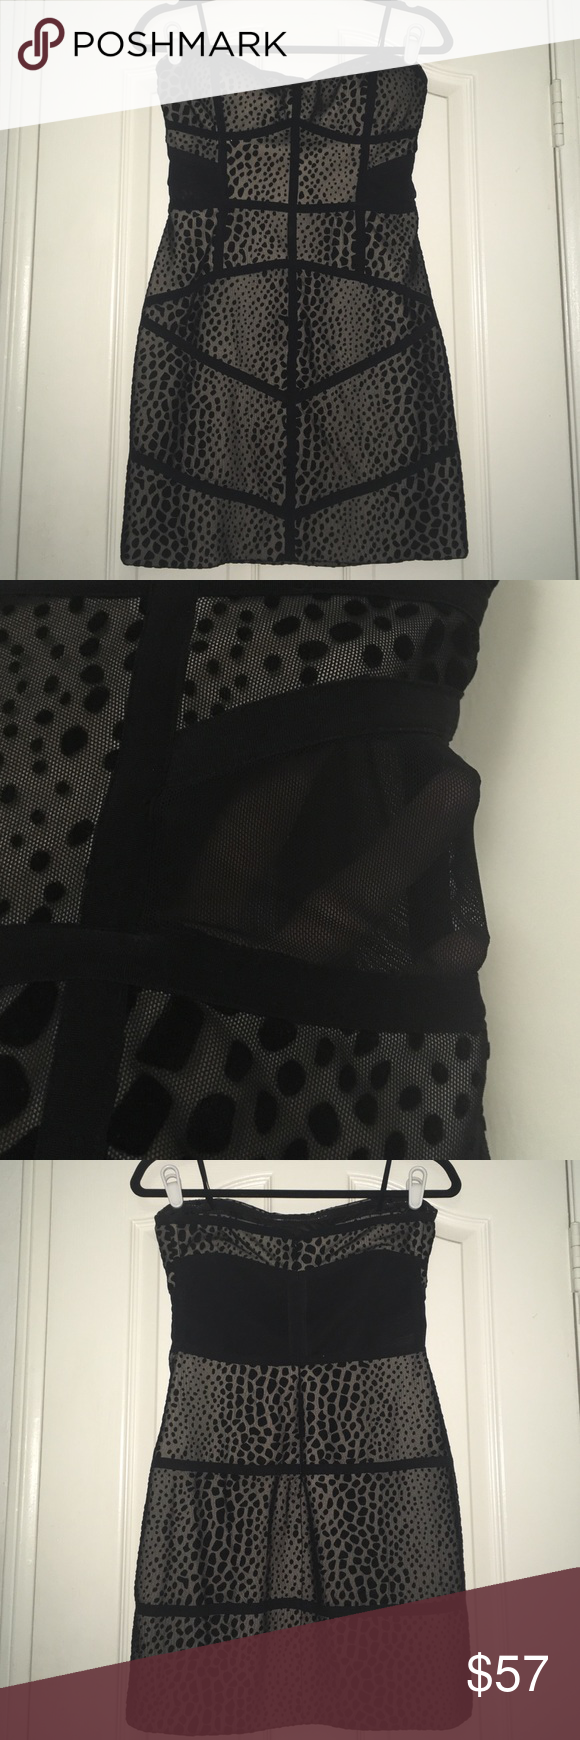 Bebe Nwot dress Stunning mesh black tube bandeau Top is strapless bandeau style, bought for my birthday and ended up wearing something else :) sexy mesh print with mesh cutout sides. Stretchy bodycon will fit many body types :) size medium, runs true to size bebe Dresses Mini